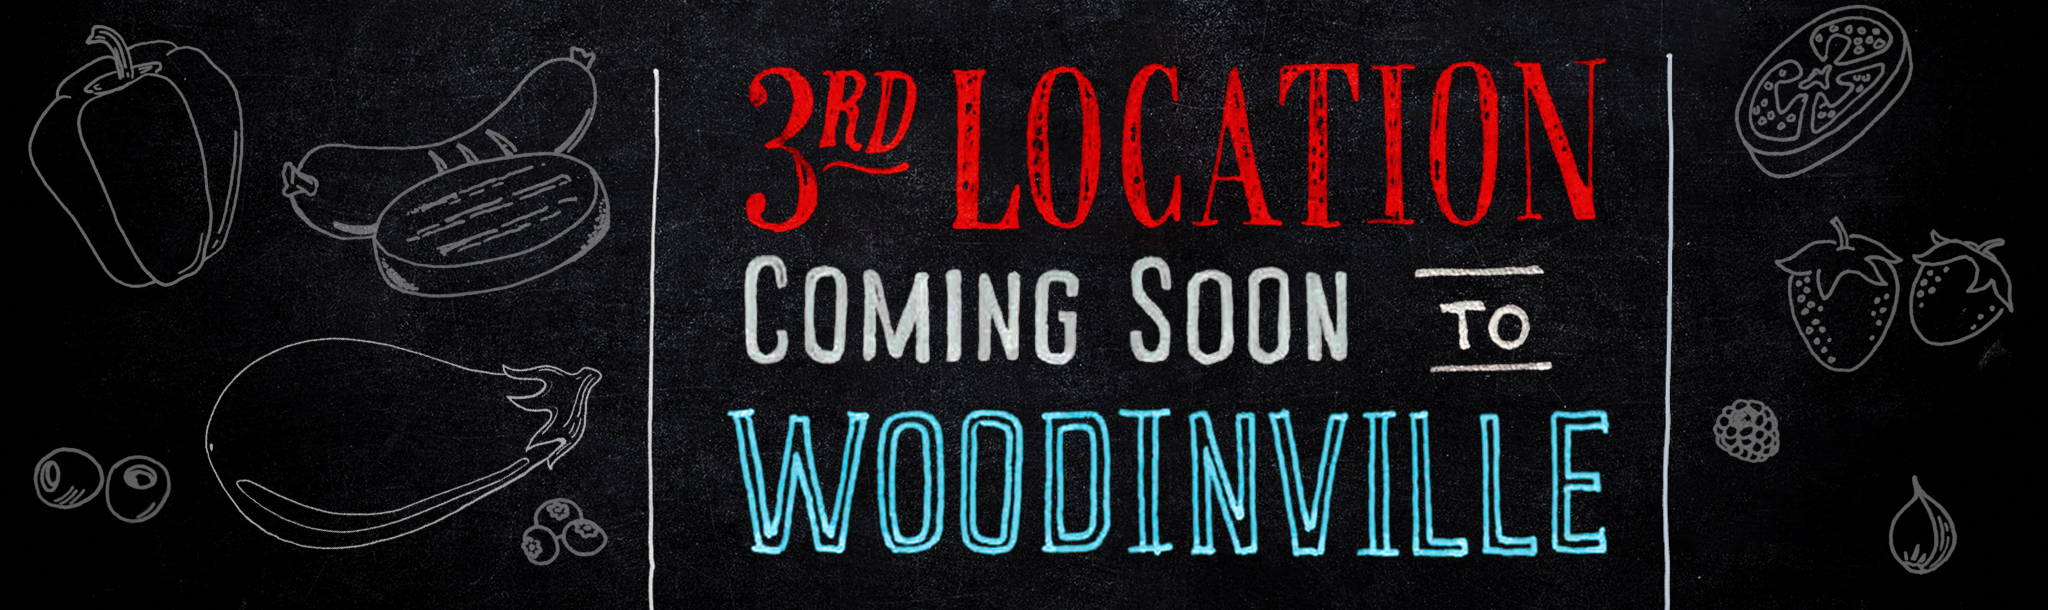 3rd location opening in woodinville